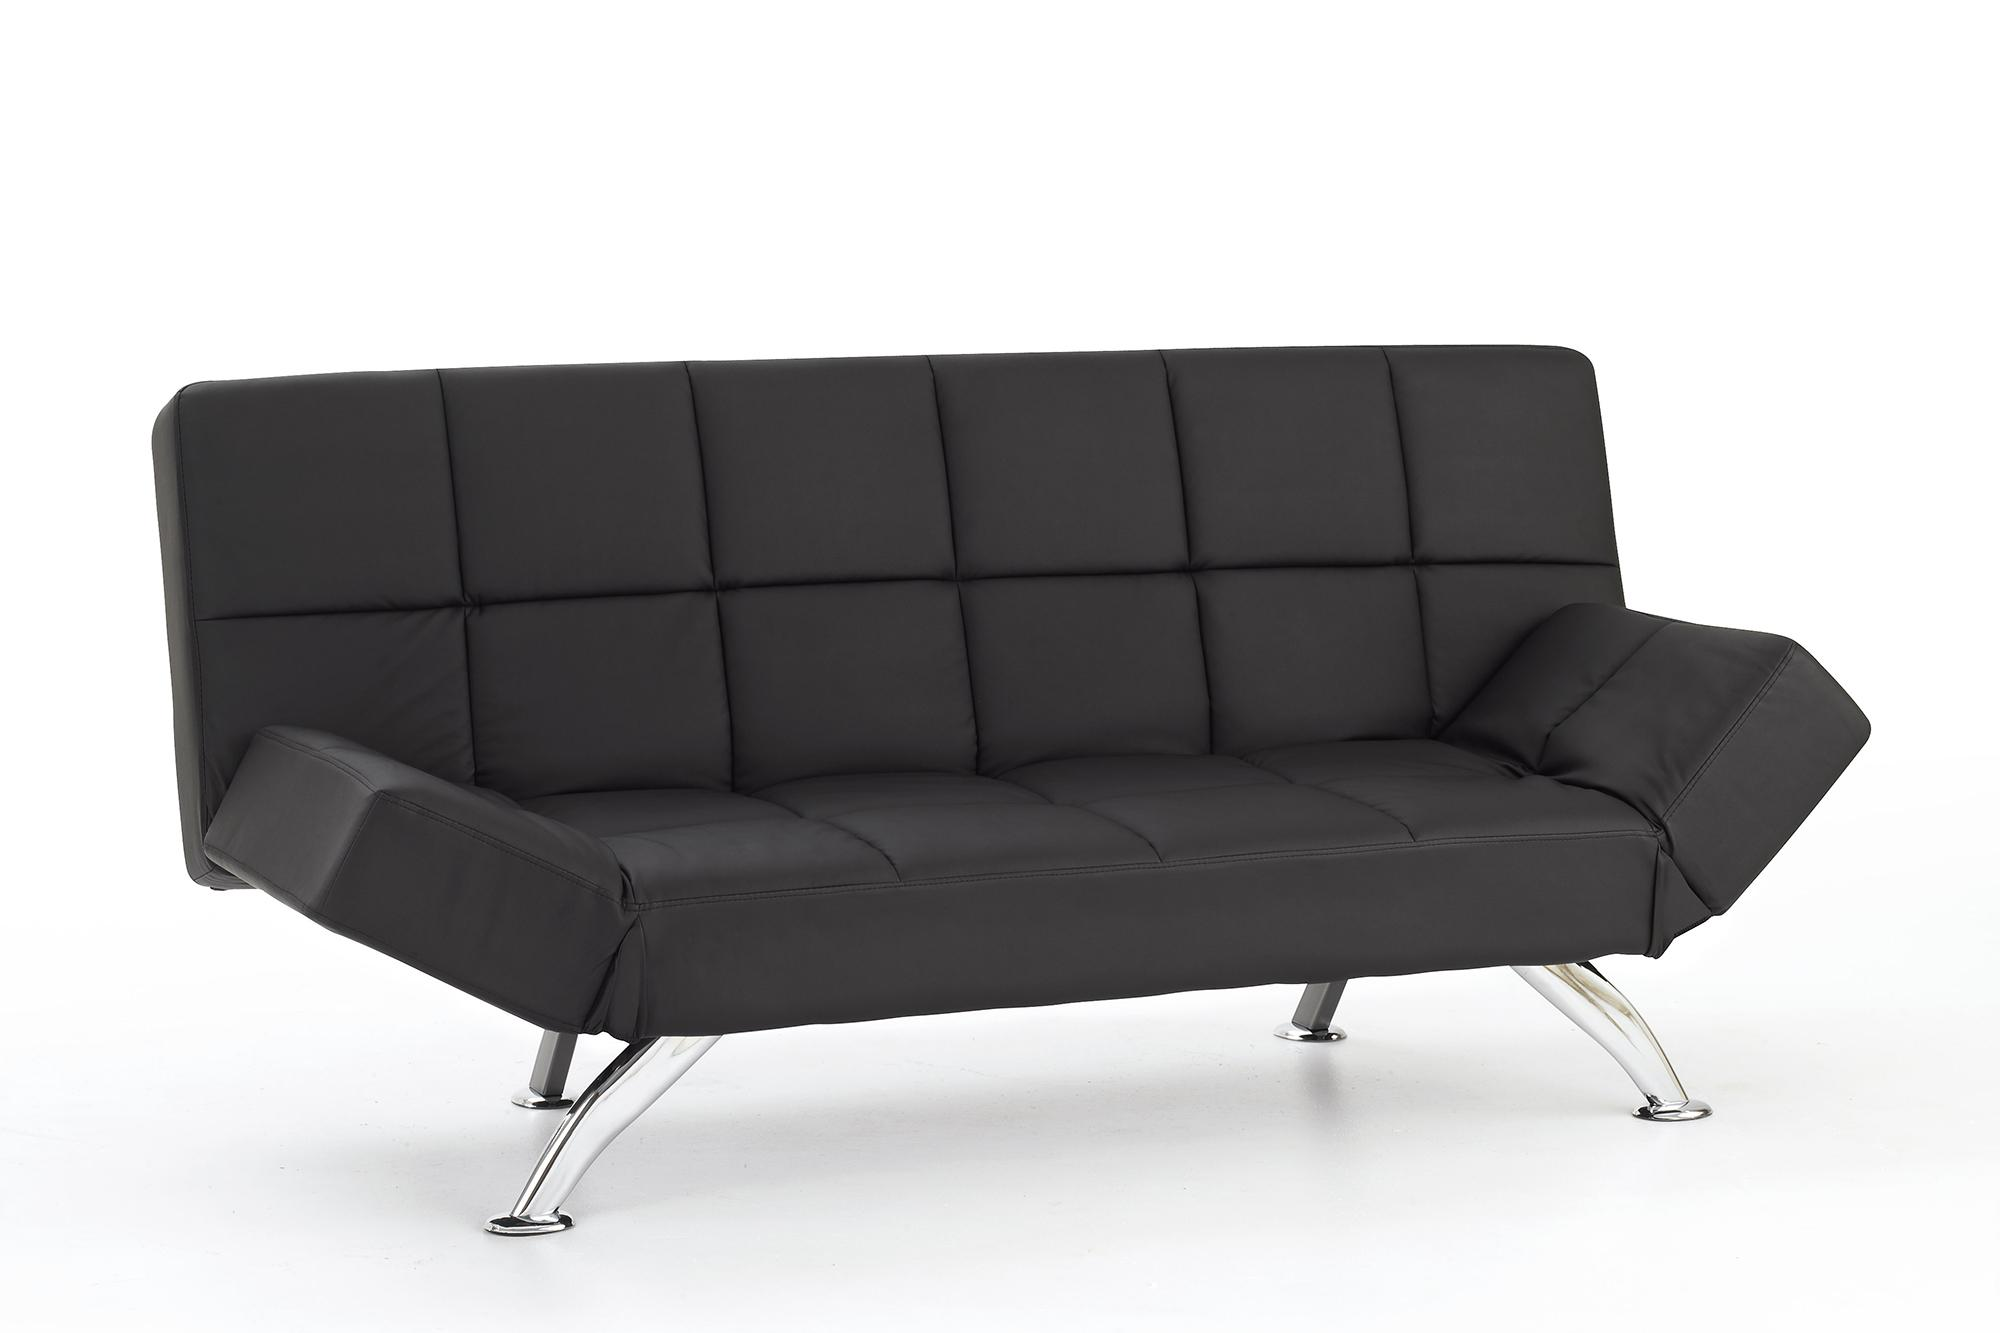 cheapest sofa deals uk full bed sleeper top 30 click clack prices best